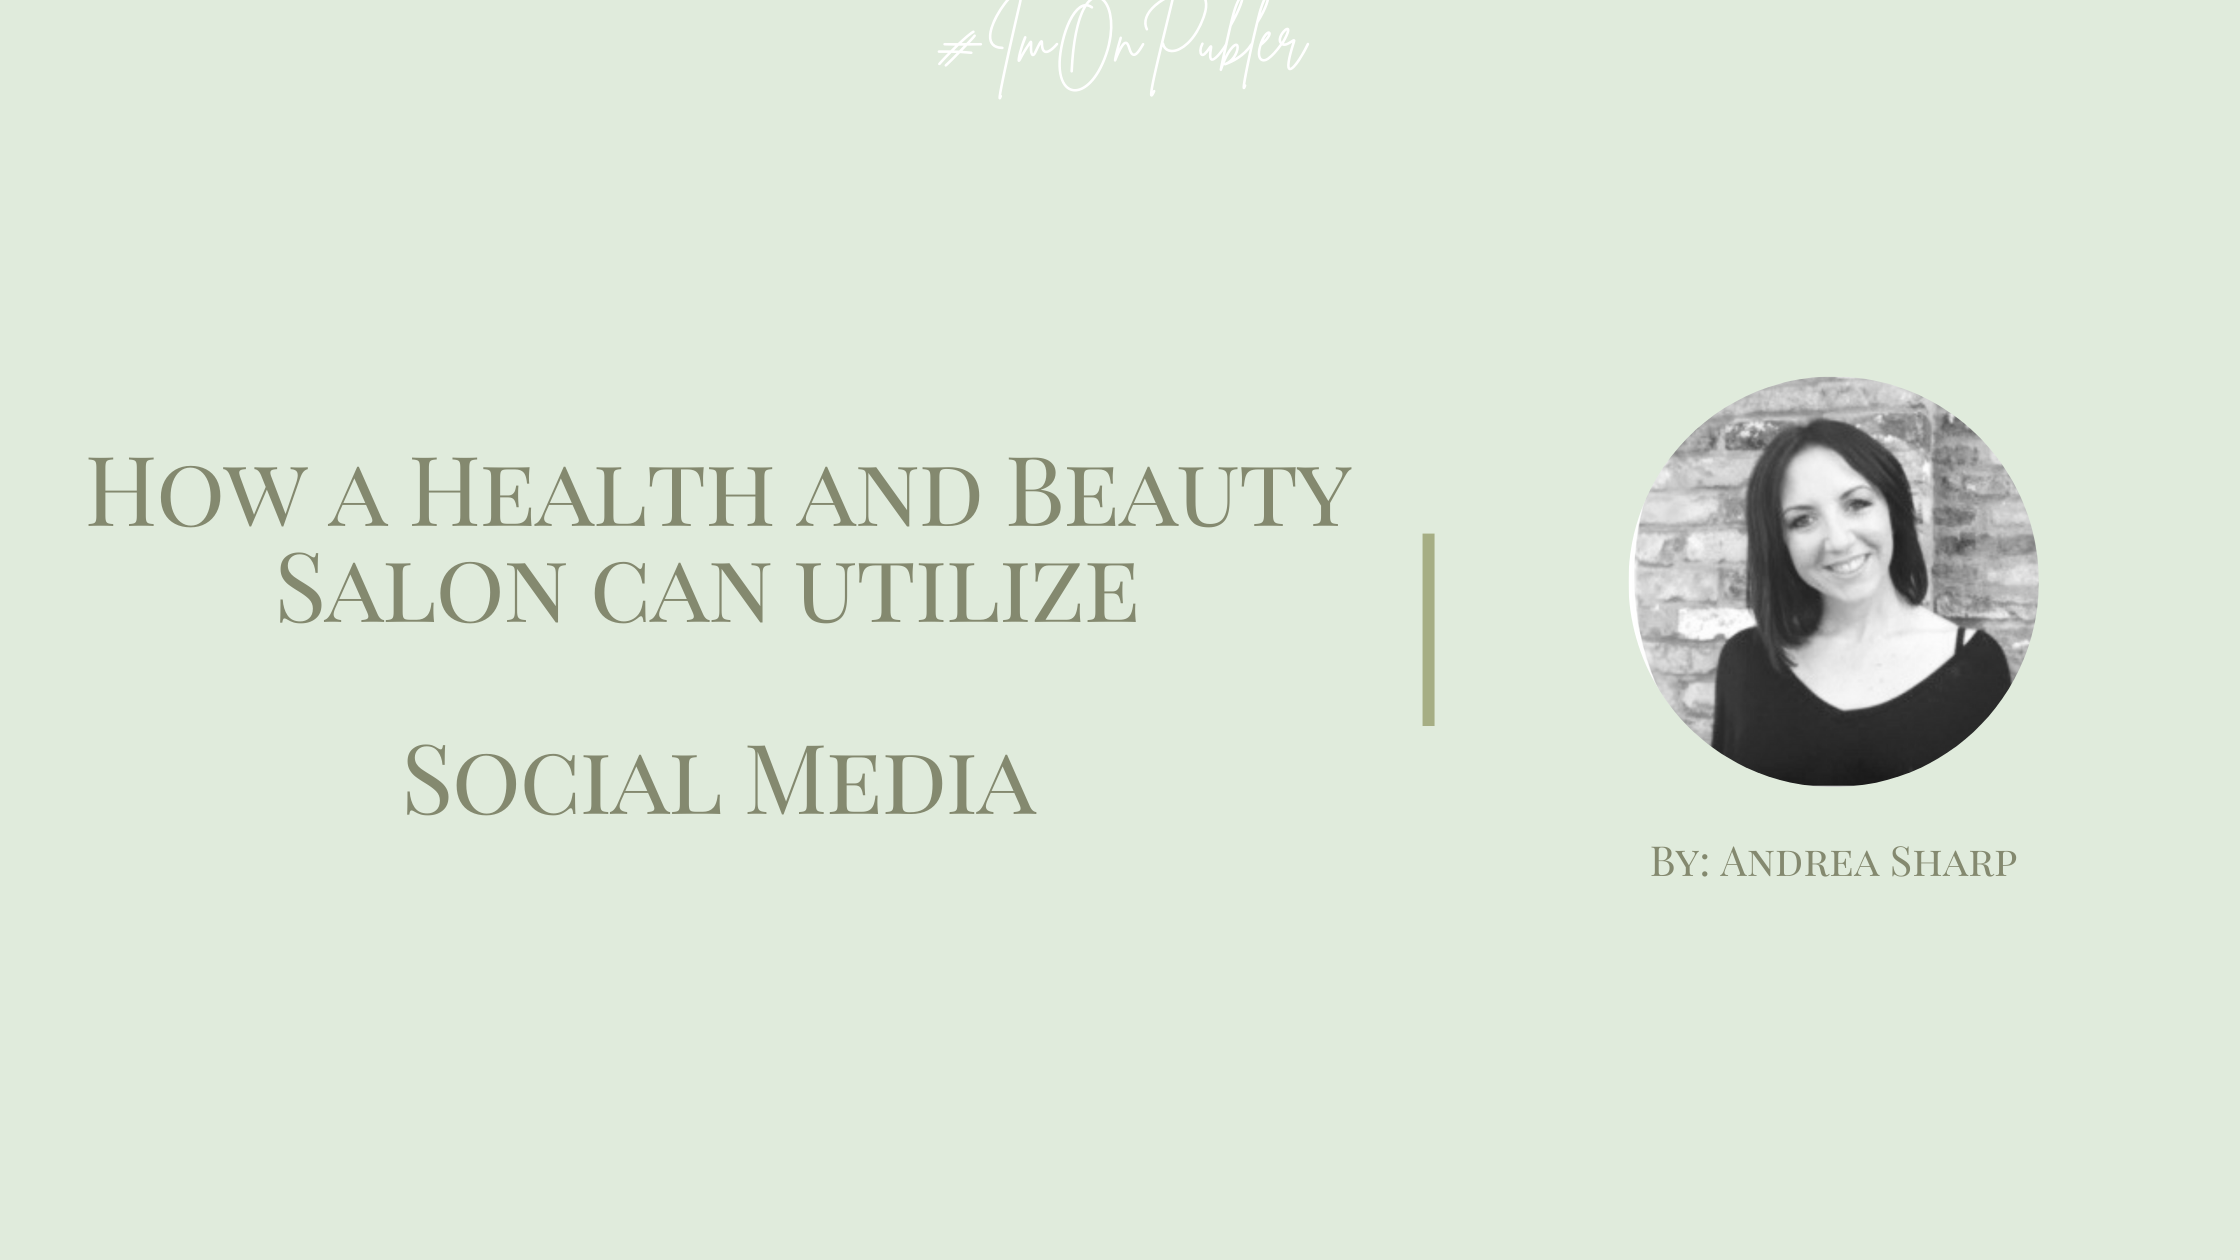 How a Health and Beauty Salon can utilize Social Media by Andrea Sharp